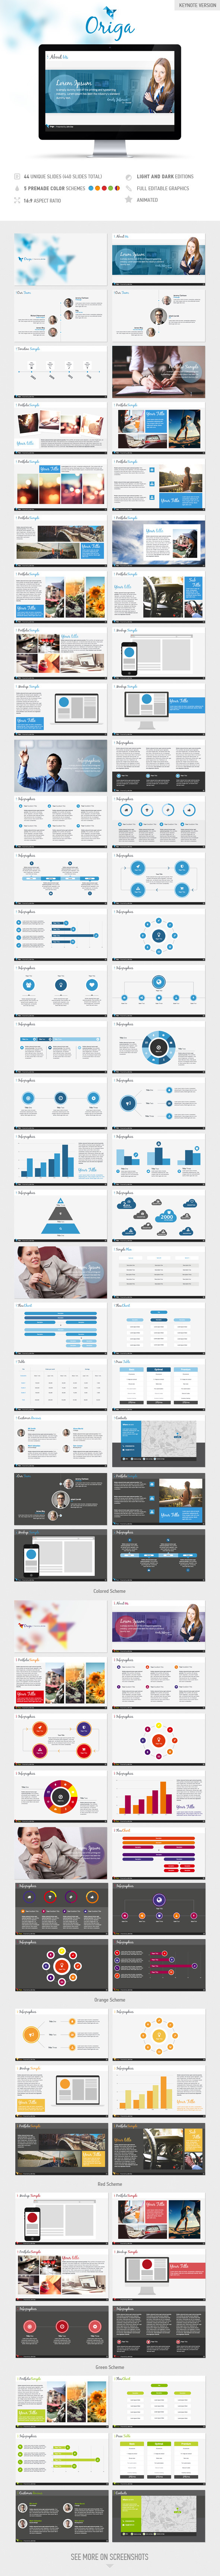 Origa Keynote Presentation Template - Business Keynote Templates